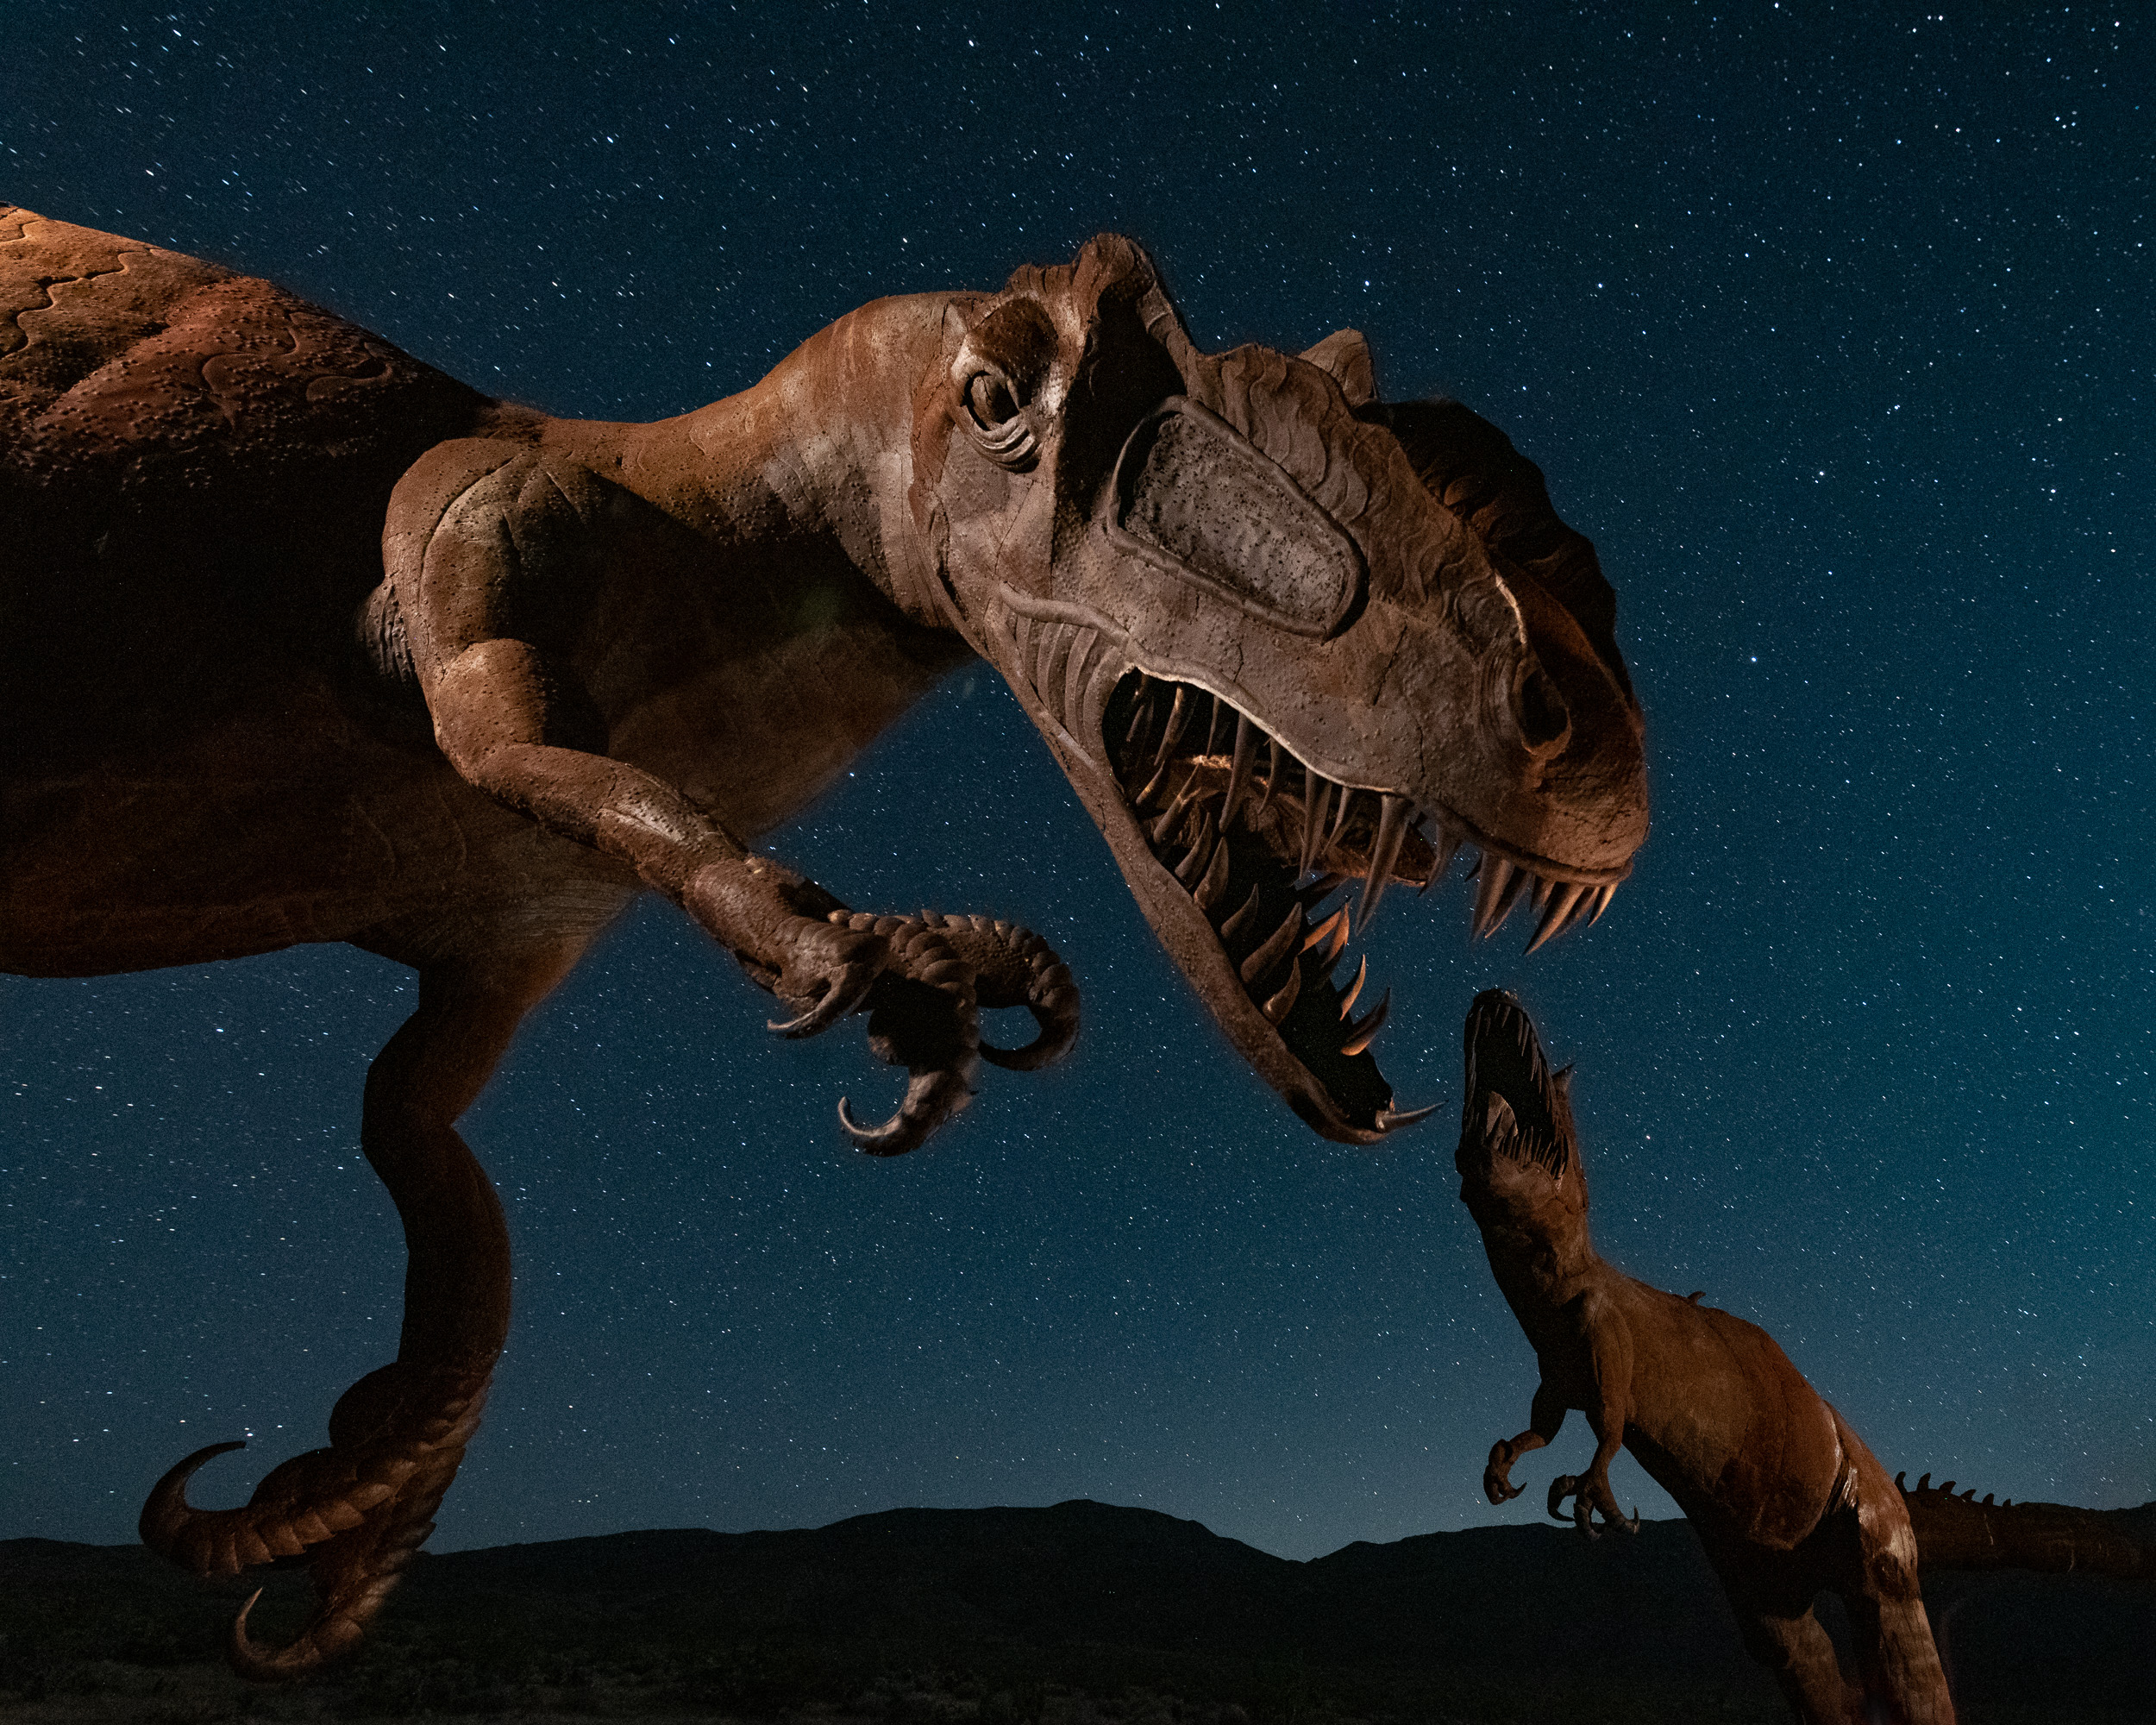 Jurassic Park in the Anza-Borrego Desert. Two life-size dinosaurs battle it out underneath the stars.  Nikon D750  with an  Irix 15mm f/2.4  lens, mounted on a  Manfrotto 190go!  tripod with an  Acratech GP-s  ball head, light painted with a  Luxli Viola . 25 seconds, f/4.5, ISO 4000.